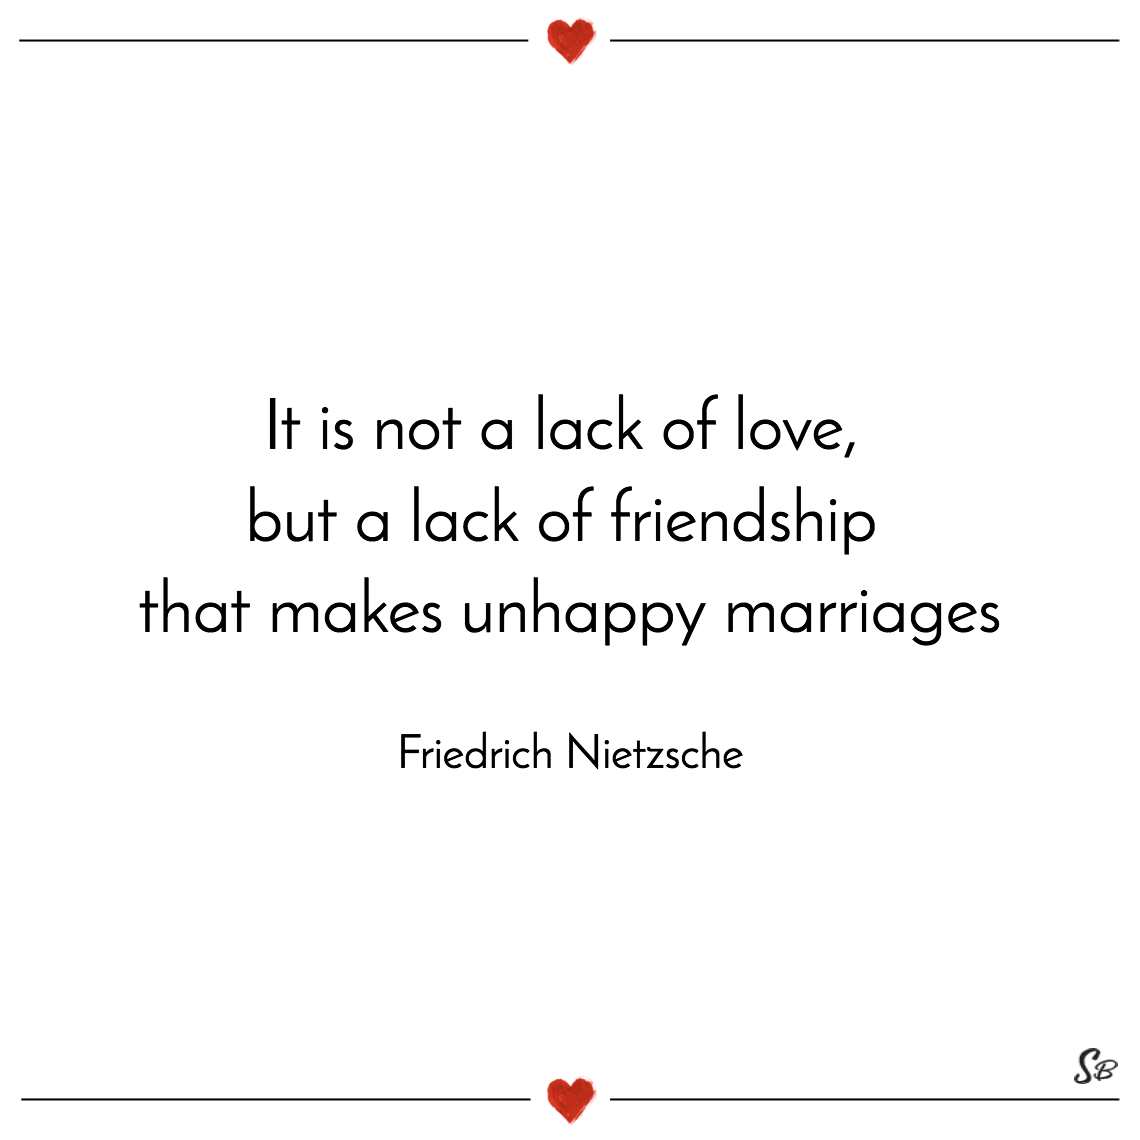 Quotes Of Love And Friendship Prepossessing 31 Beautiful Marriage Quotes About Love And Friendship  Spirit Button